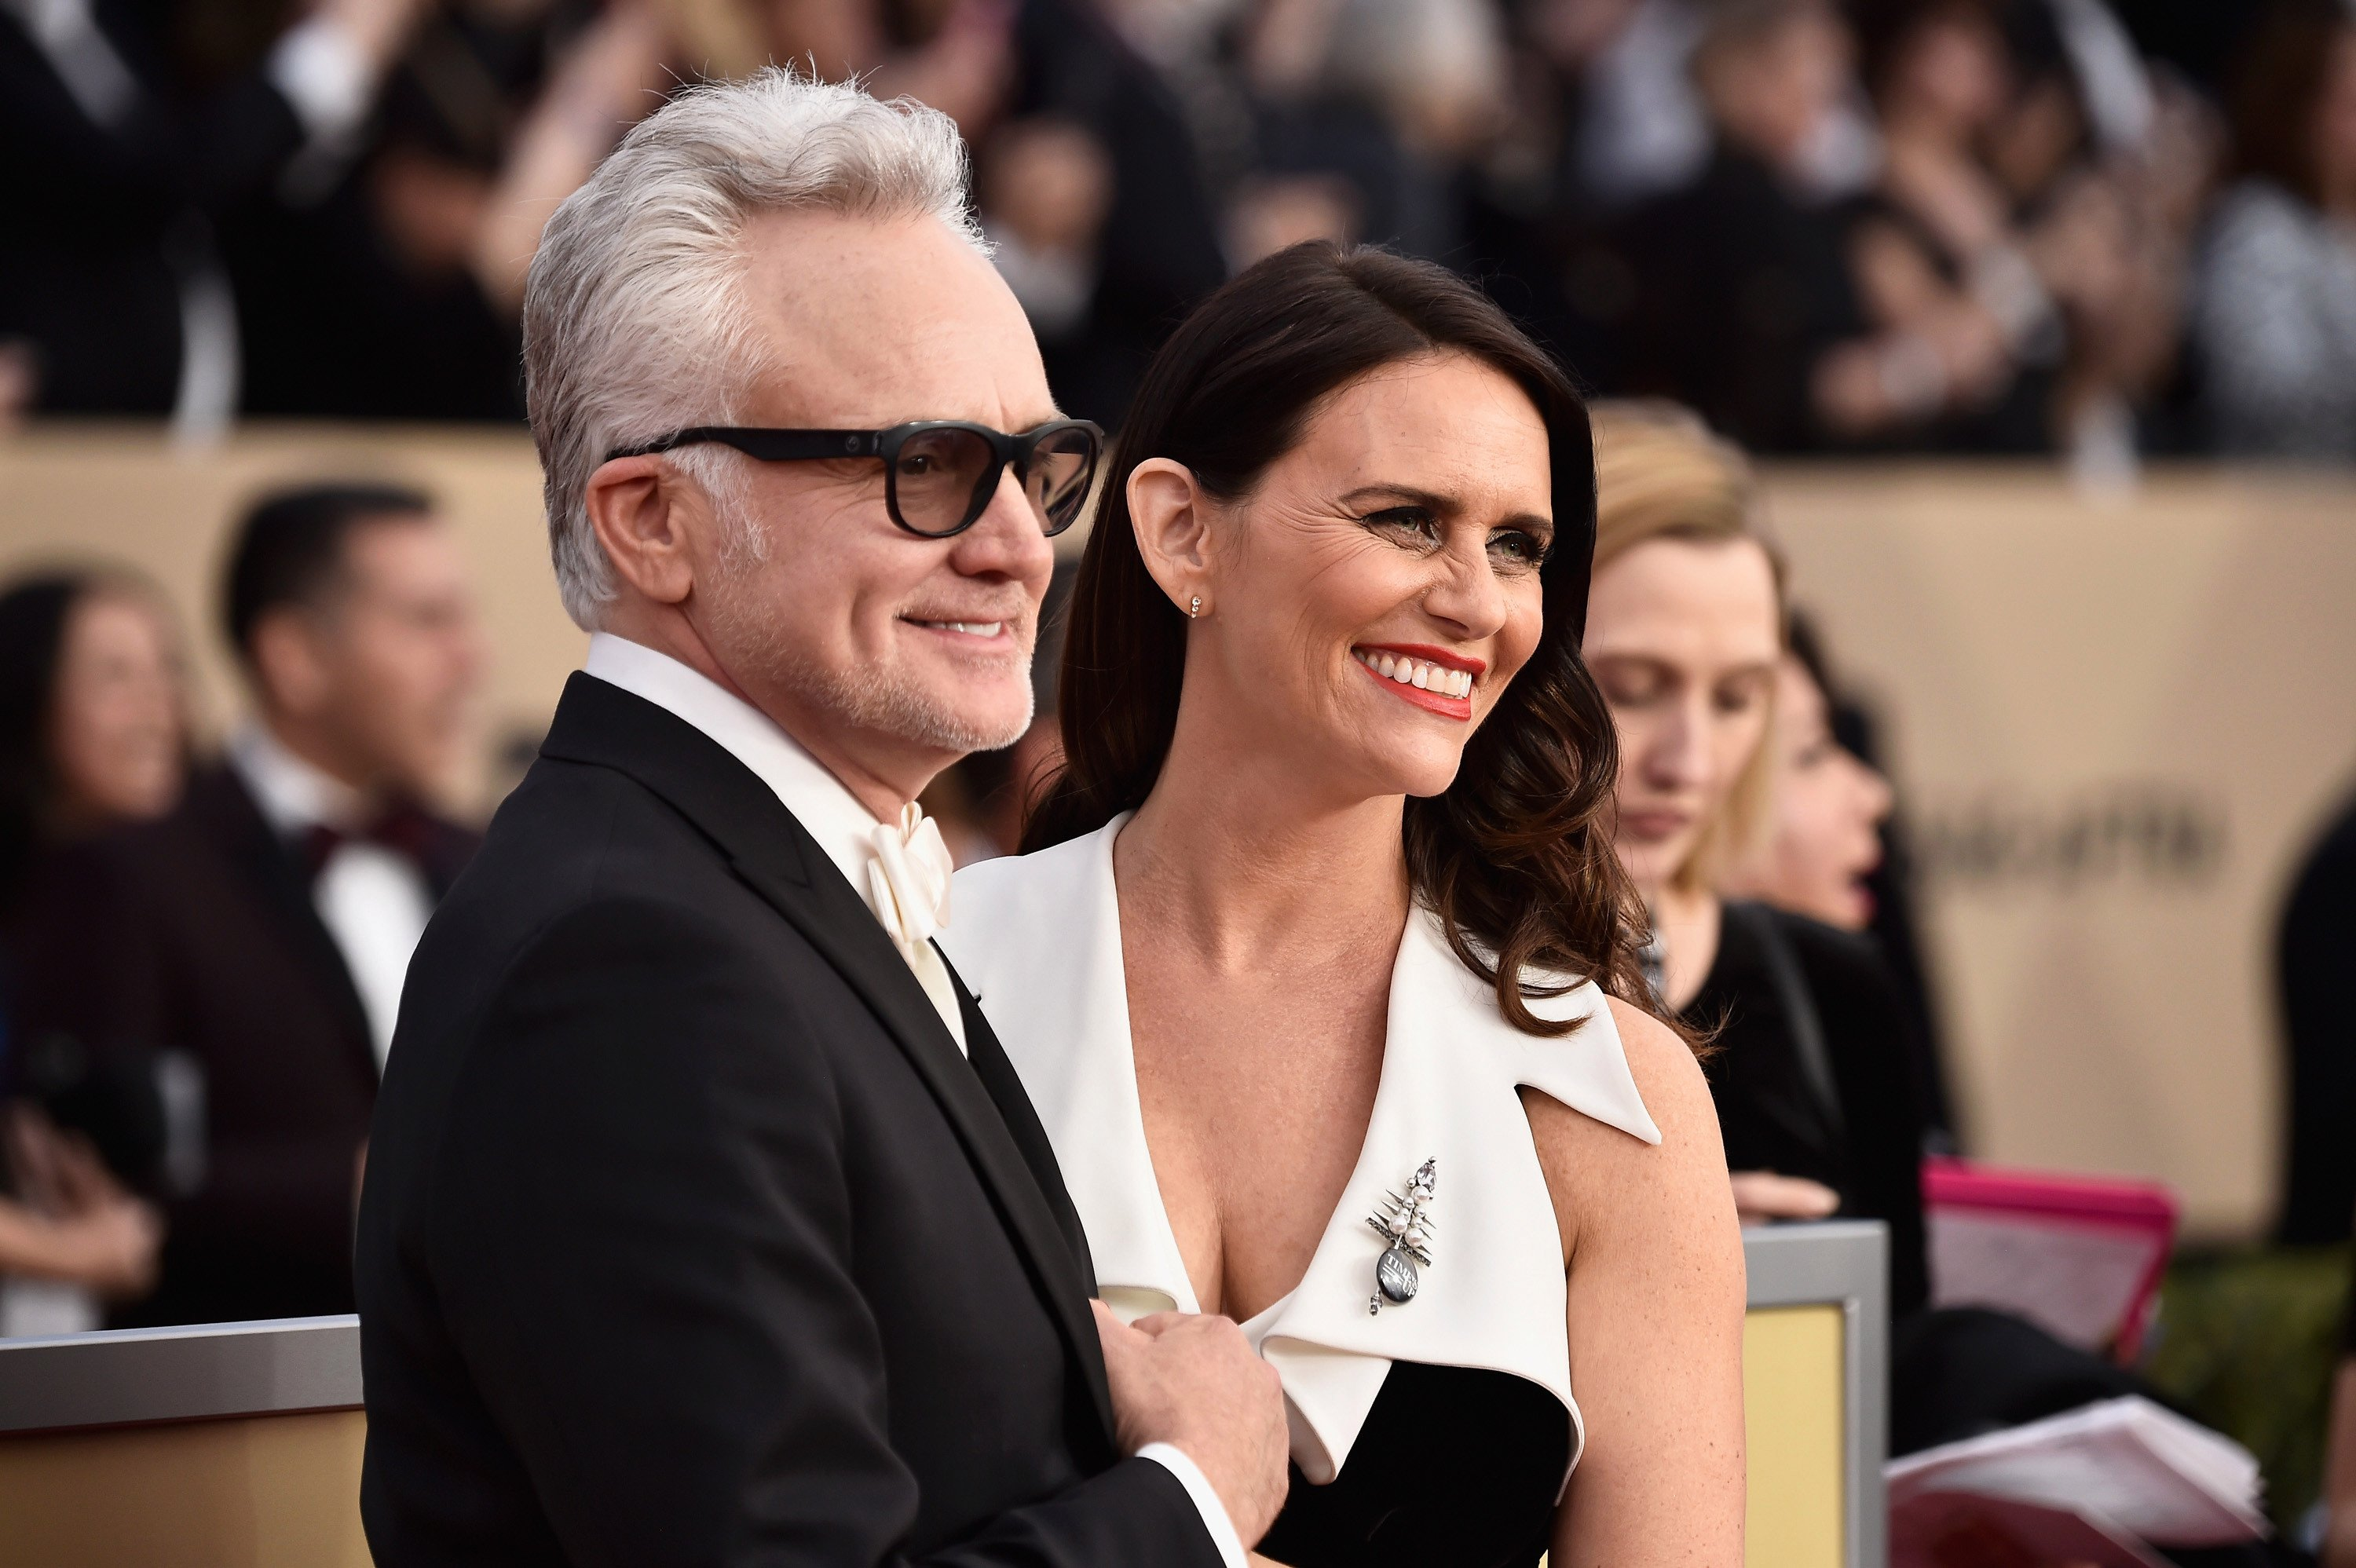 Are Bradley Whitford and Amy Landecker engaged?